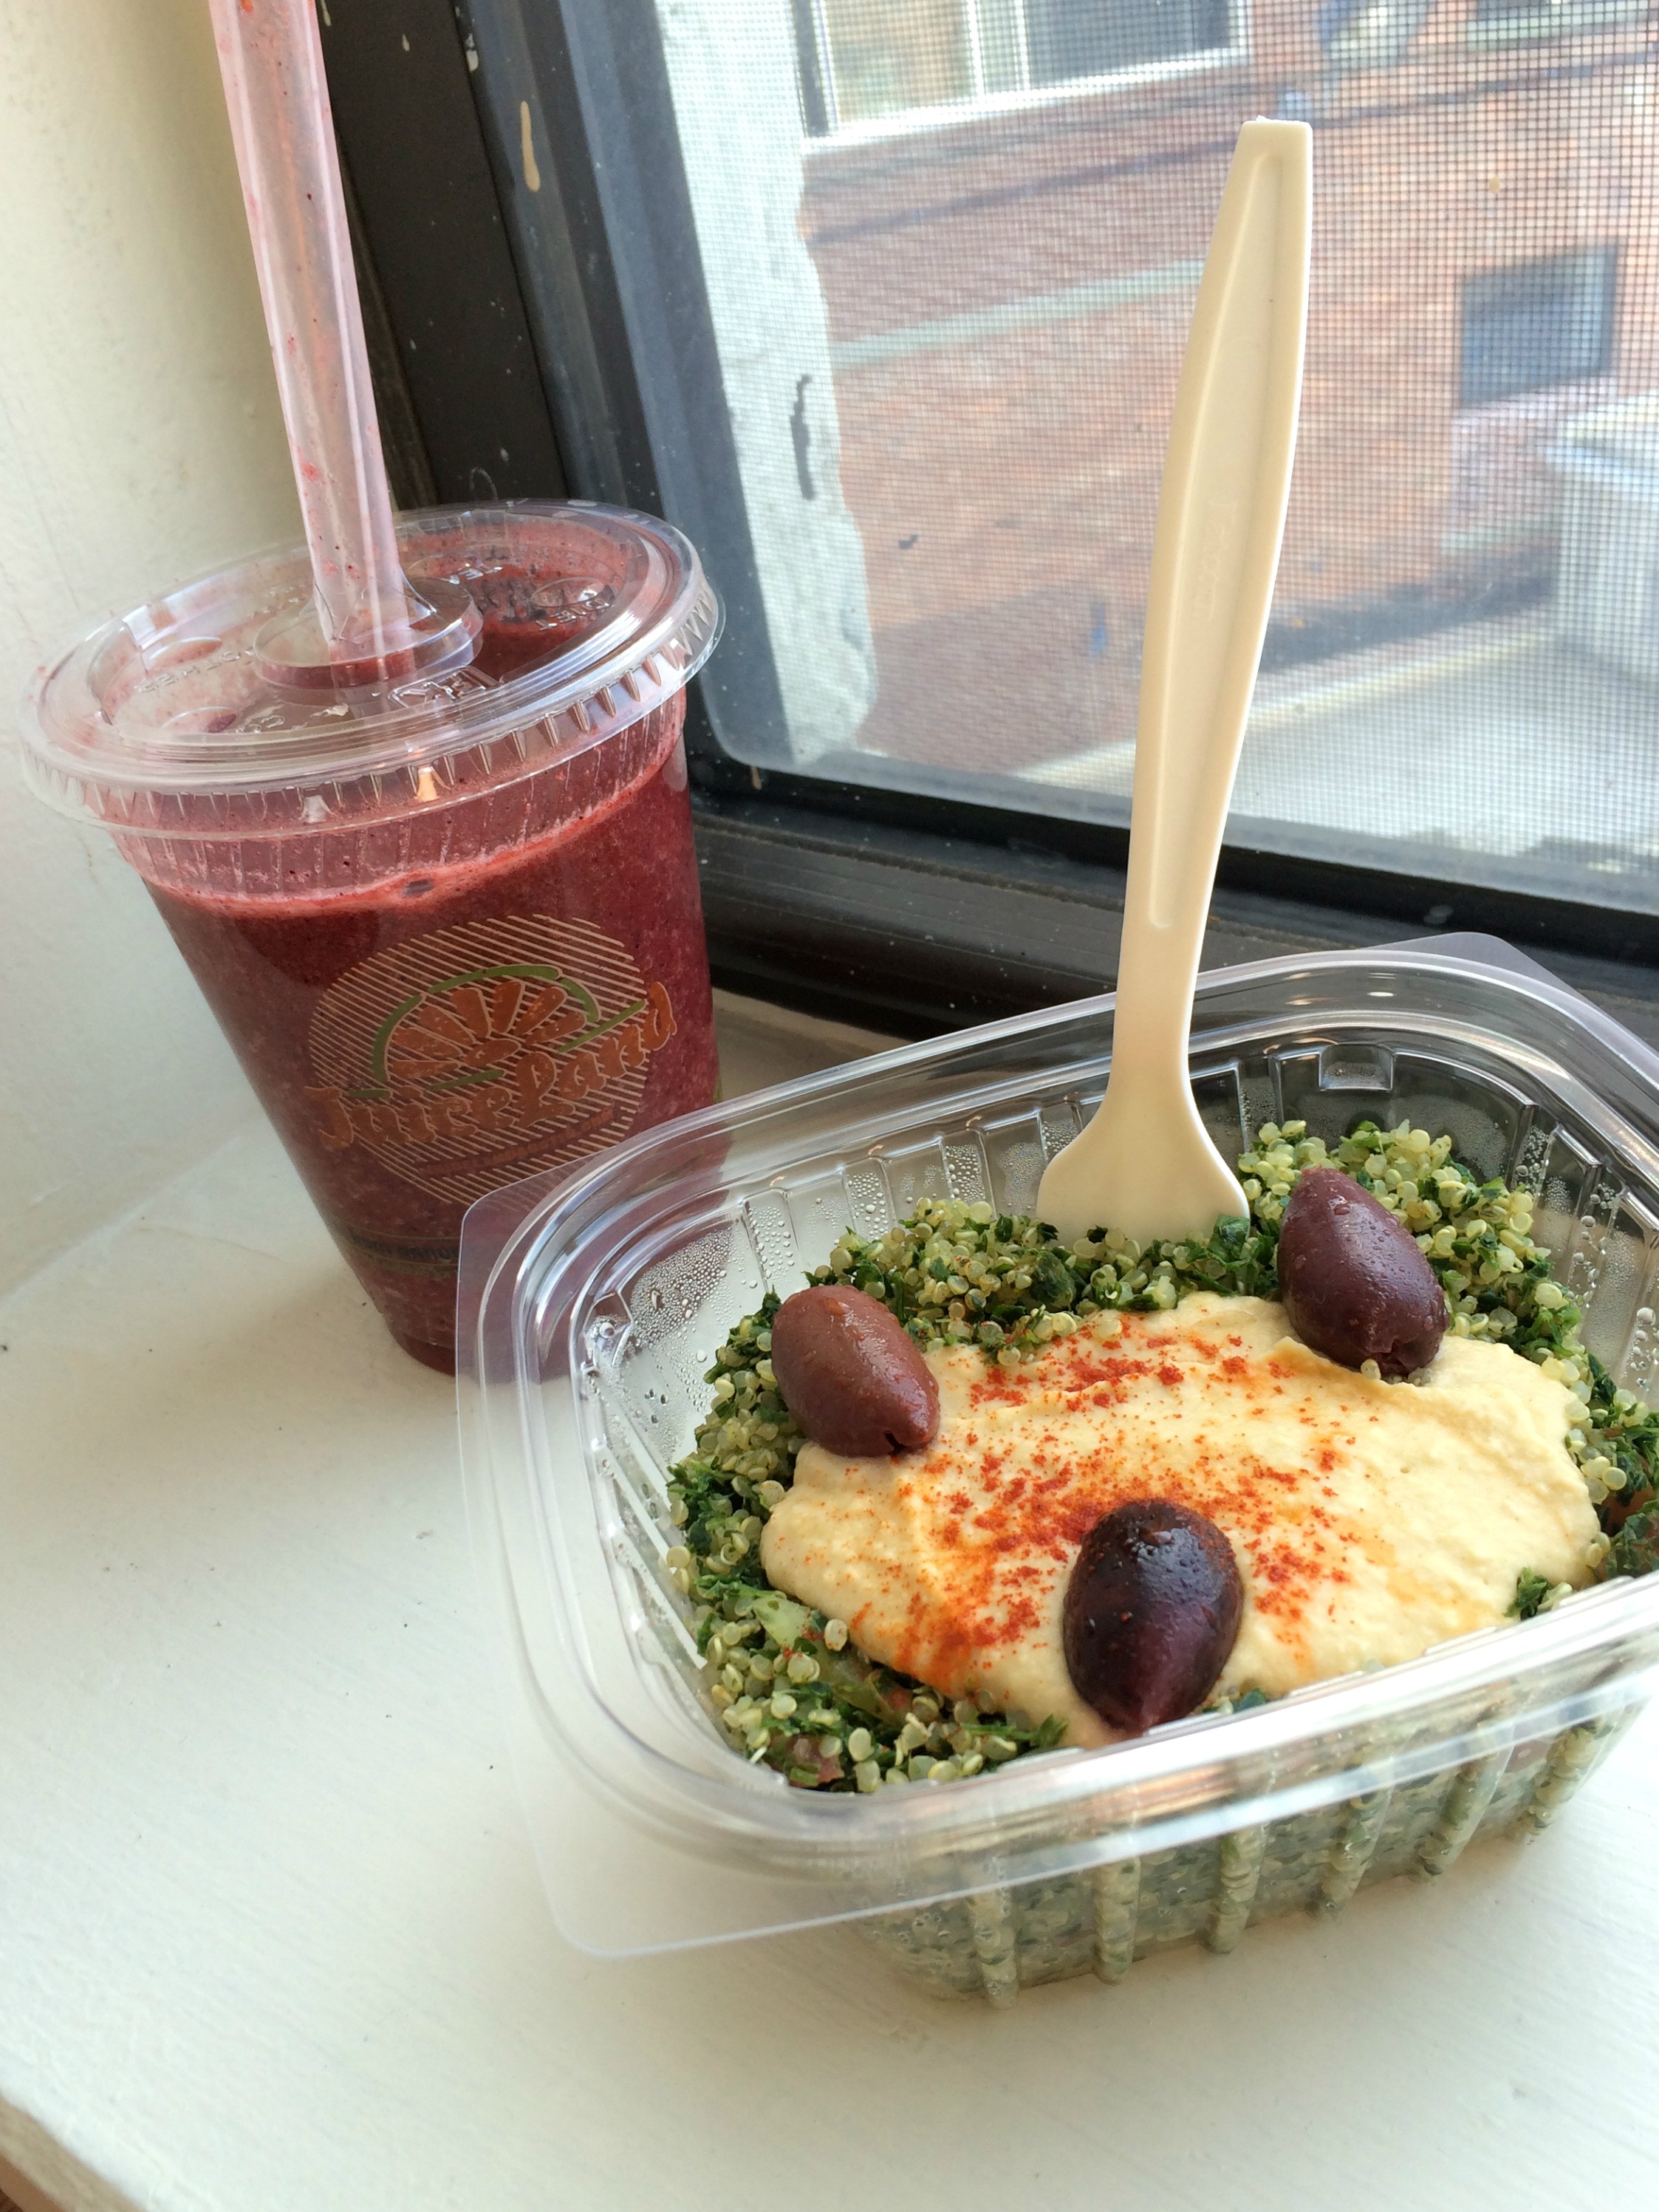 Juiceland smoothie and quinoa salad